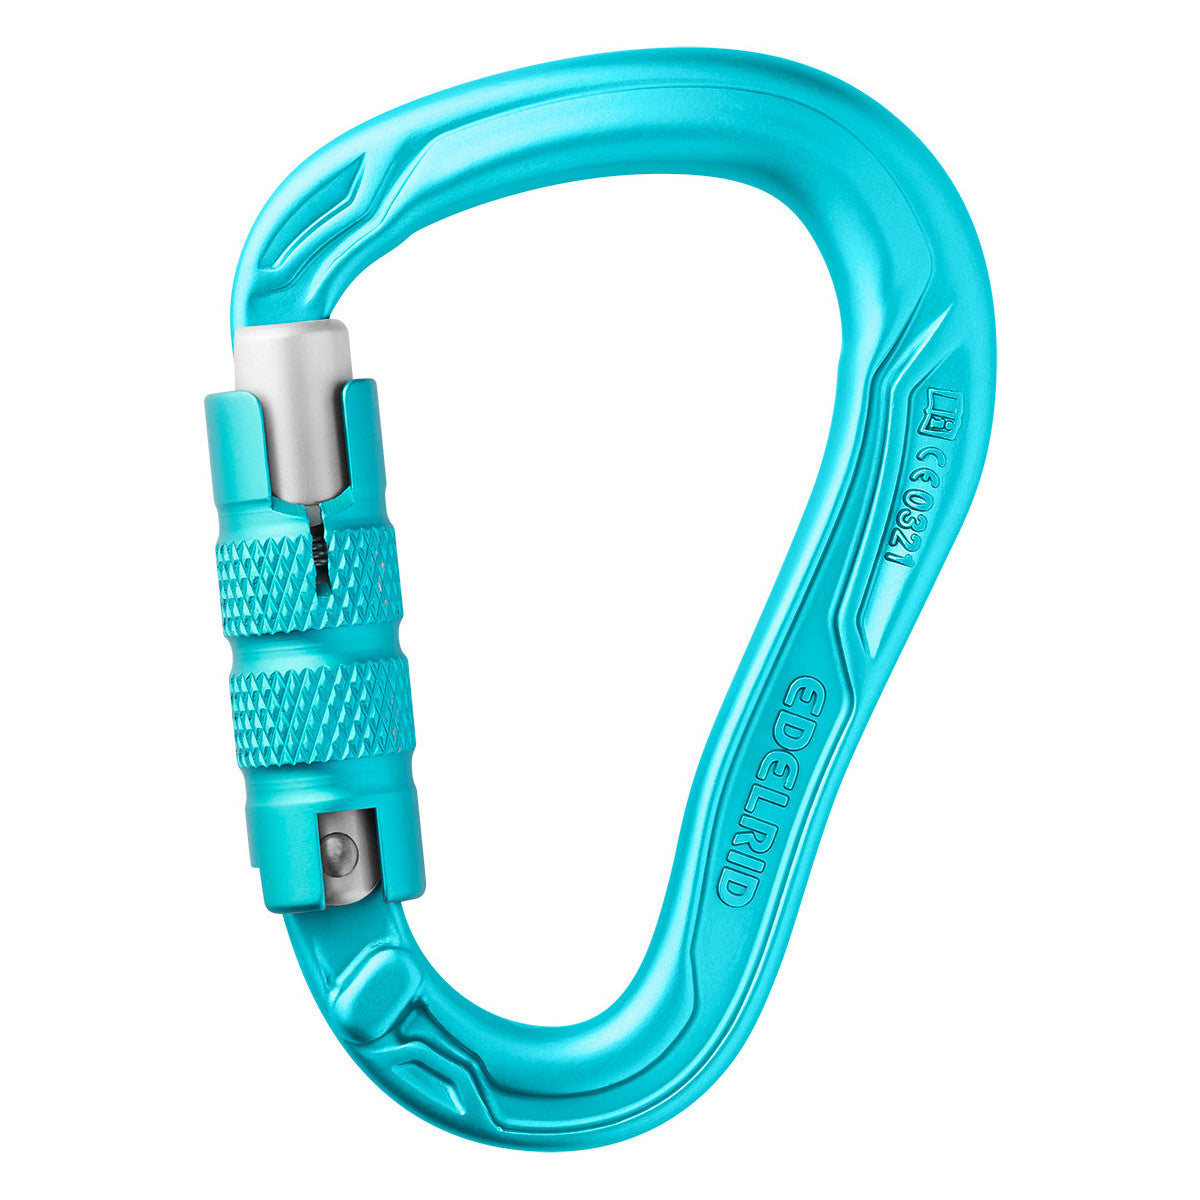 Edelrid HMS Bullet Triple in Teal